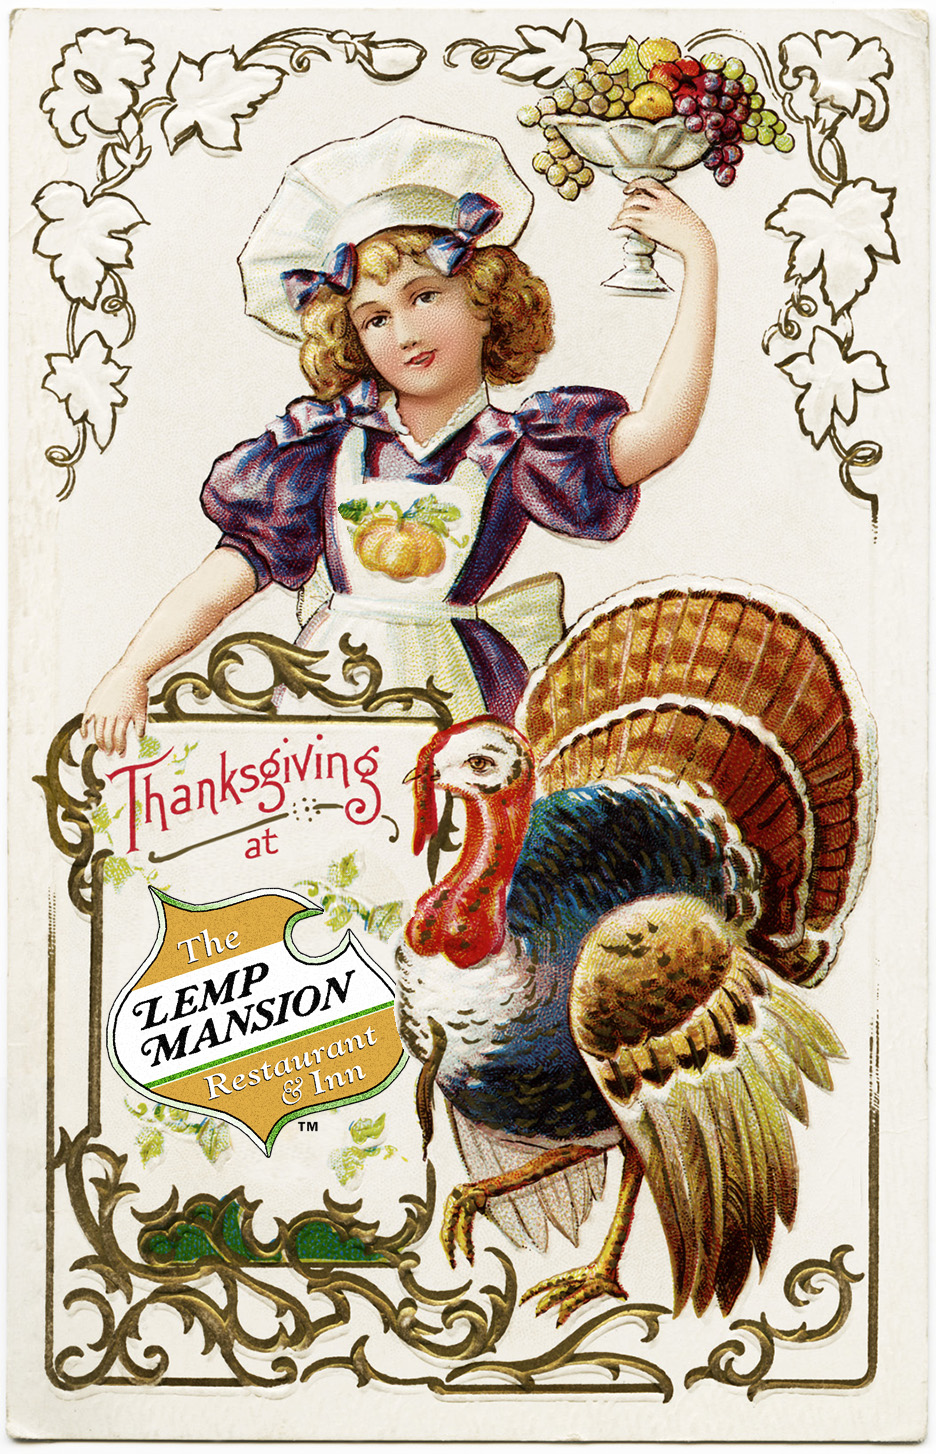 The lemp mansion st louis missouri 314 664 8024 for Thanksgiving dinner with all the trimmings